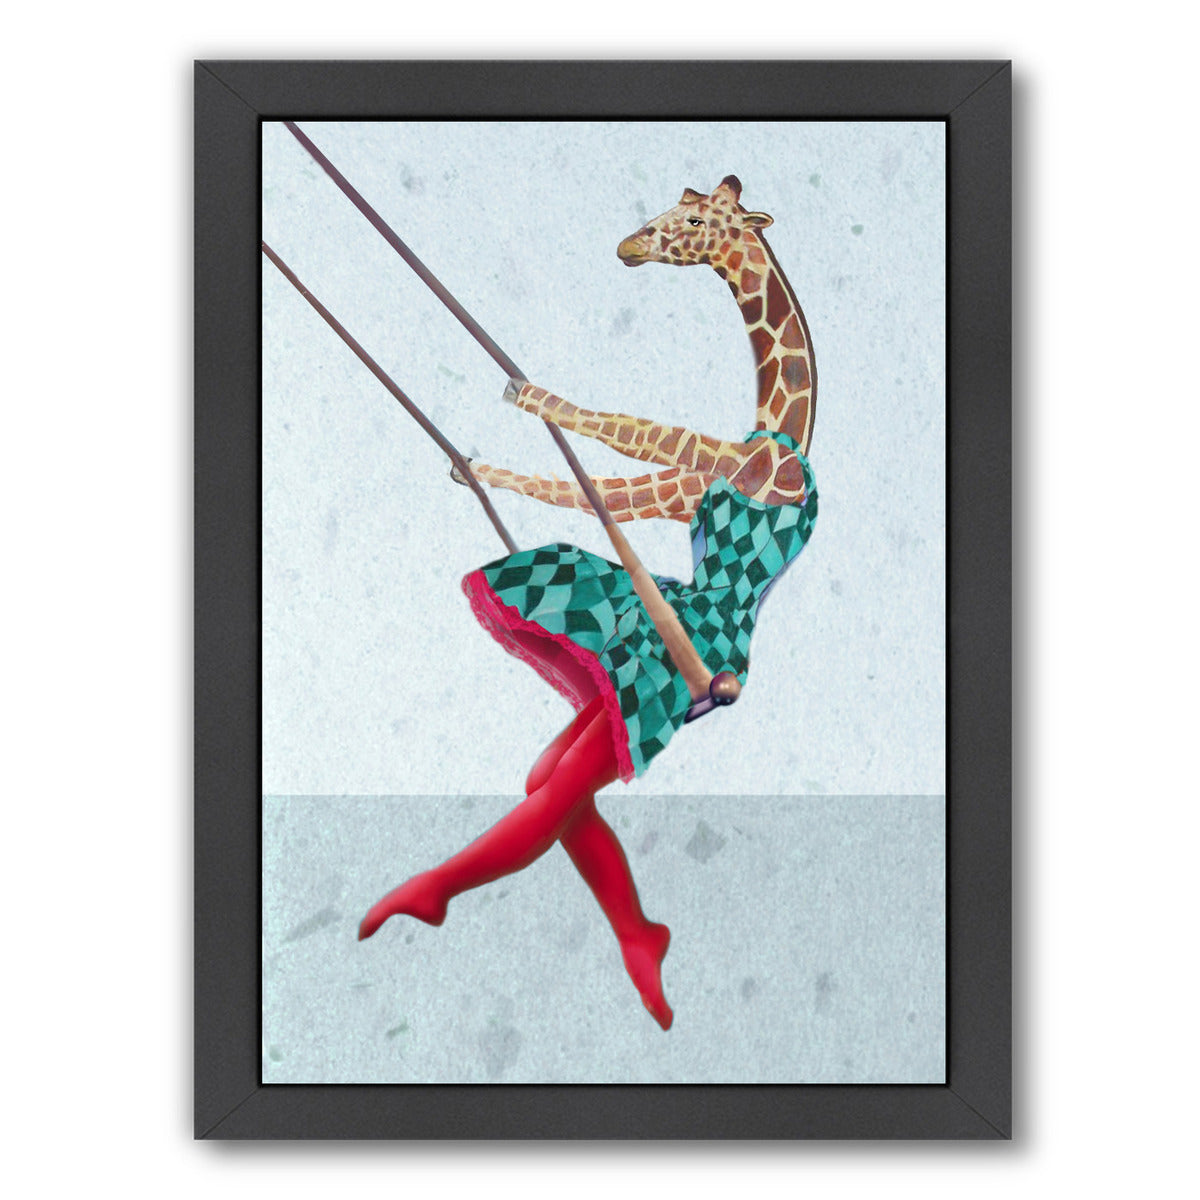 Giraffe On A Swing Right By Coco De Paris - Black Framed Print - Wall Art - Americanflat